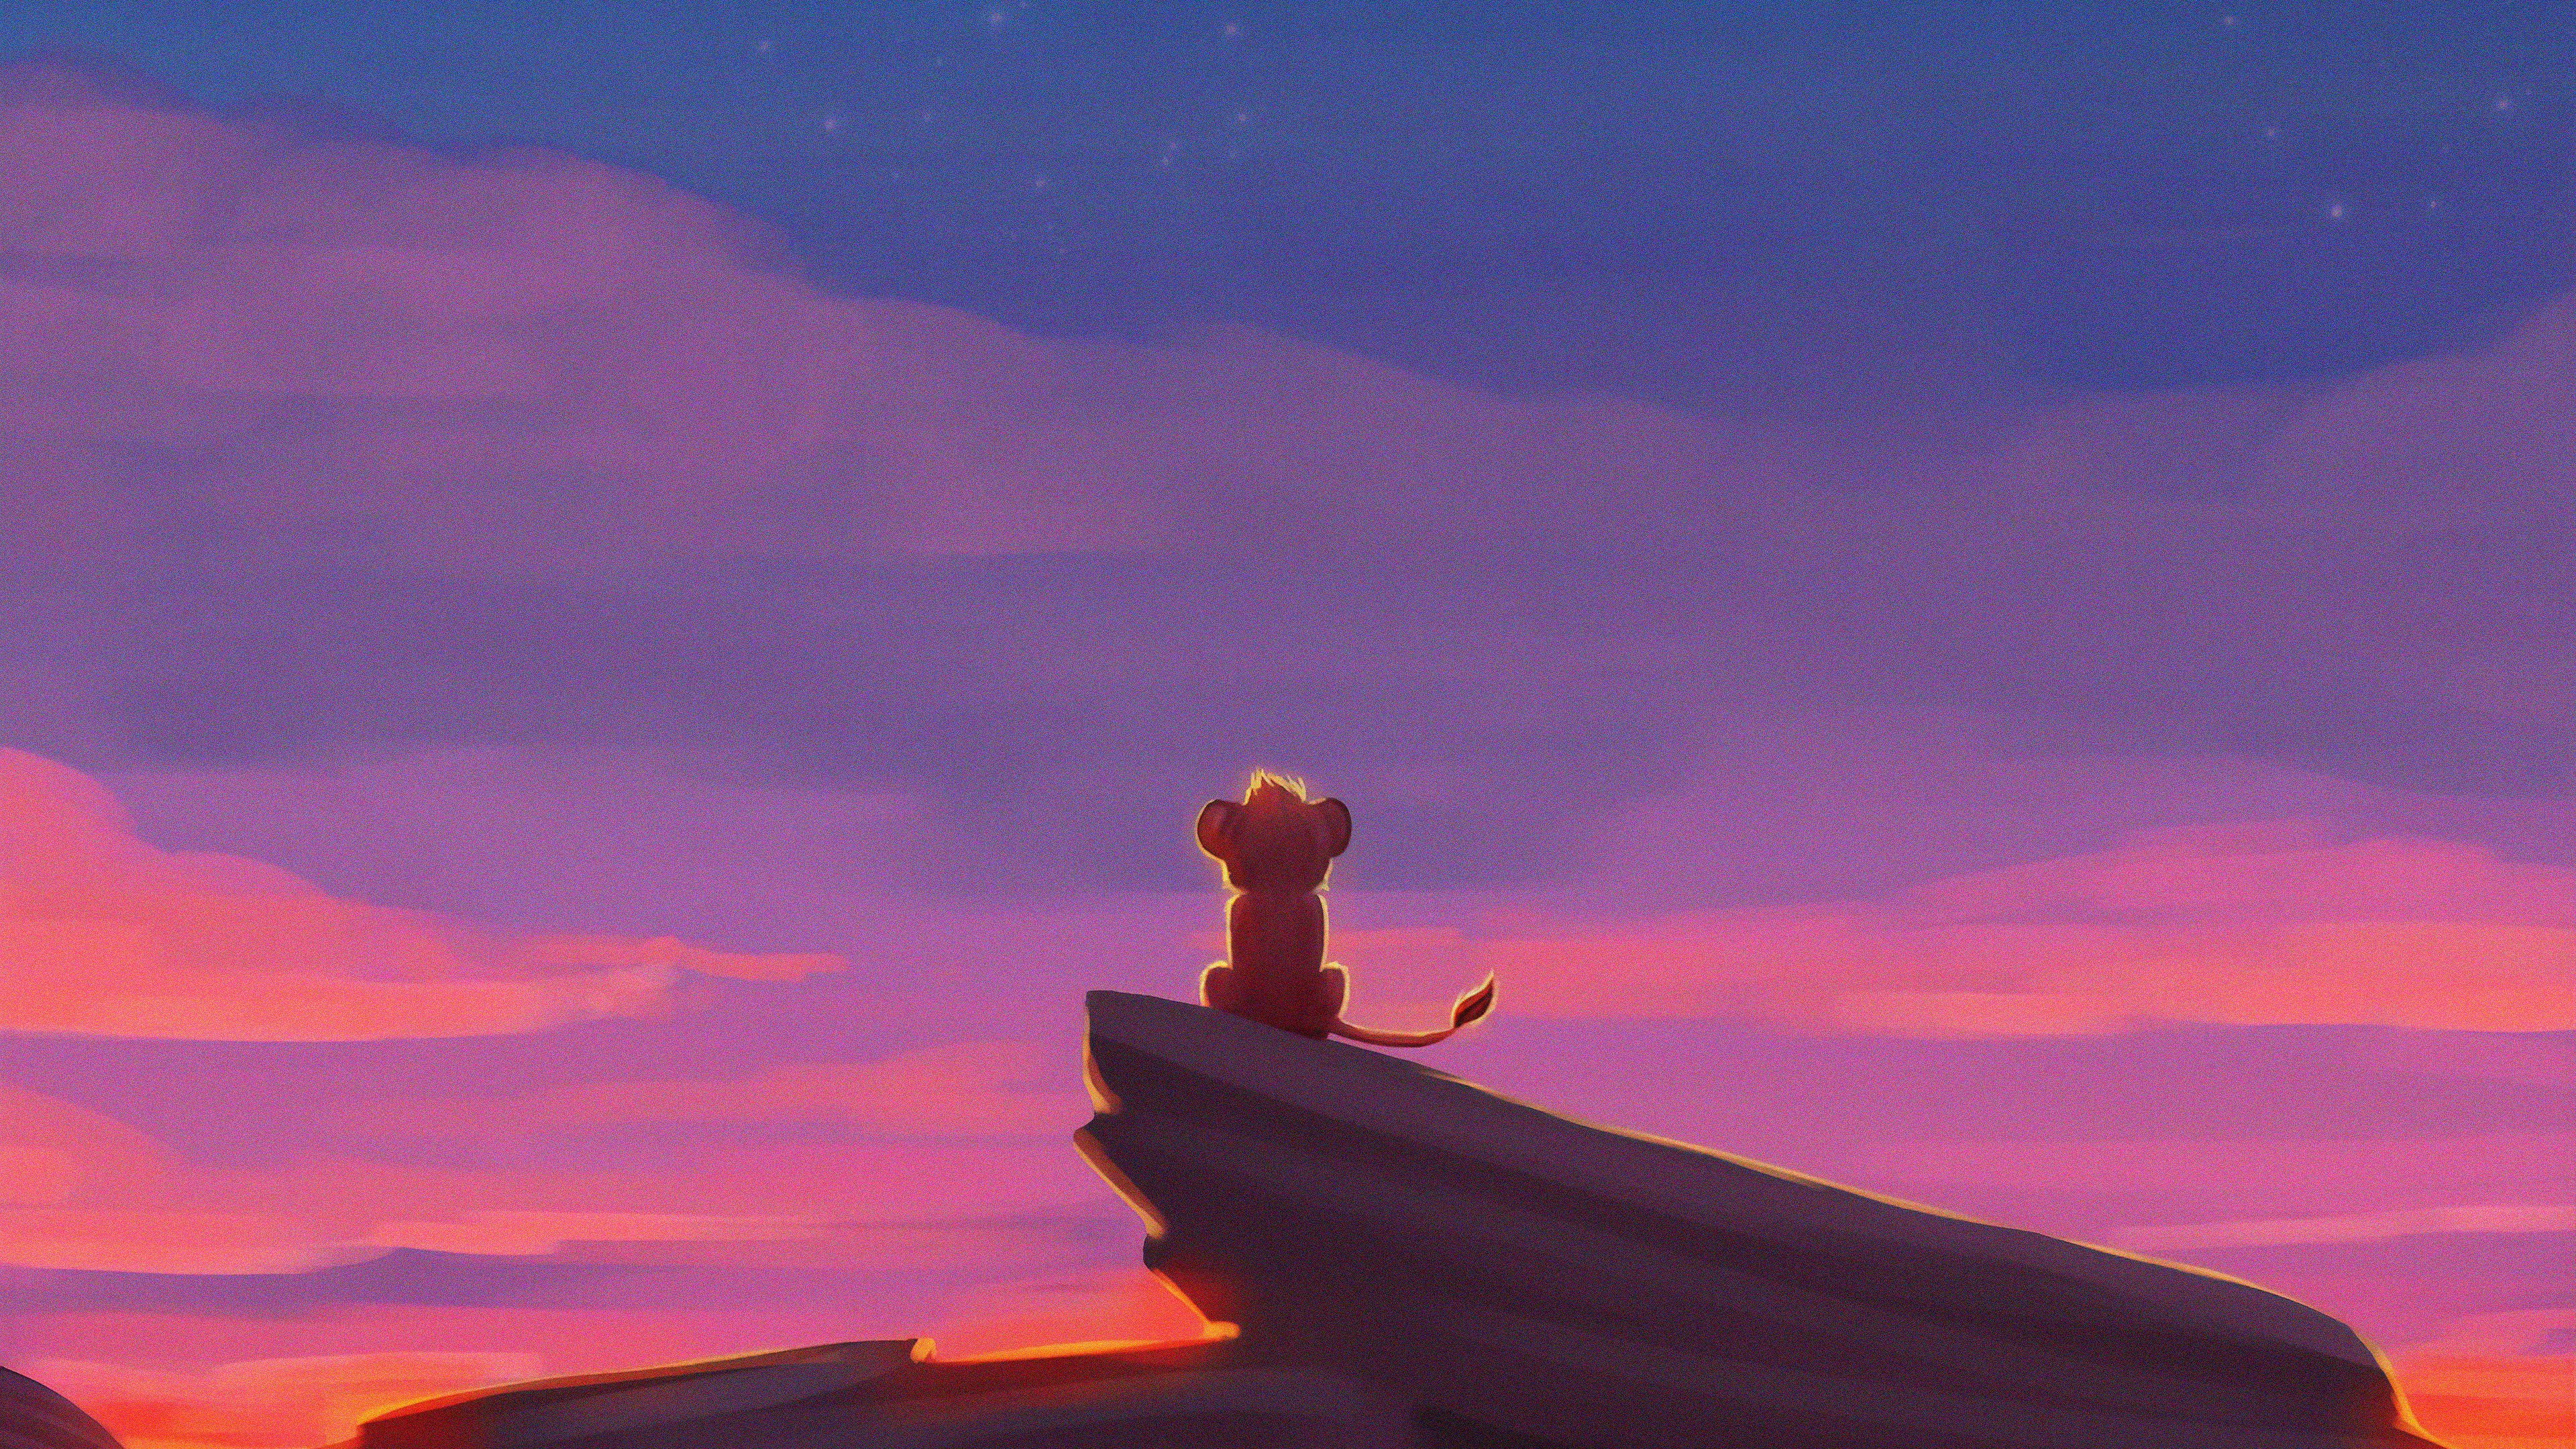 Simba The Lion King Hd Movies 4k Wallpapers Images